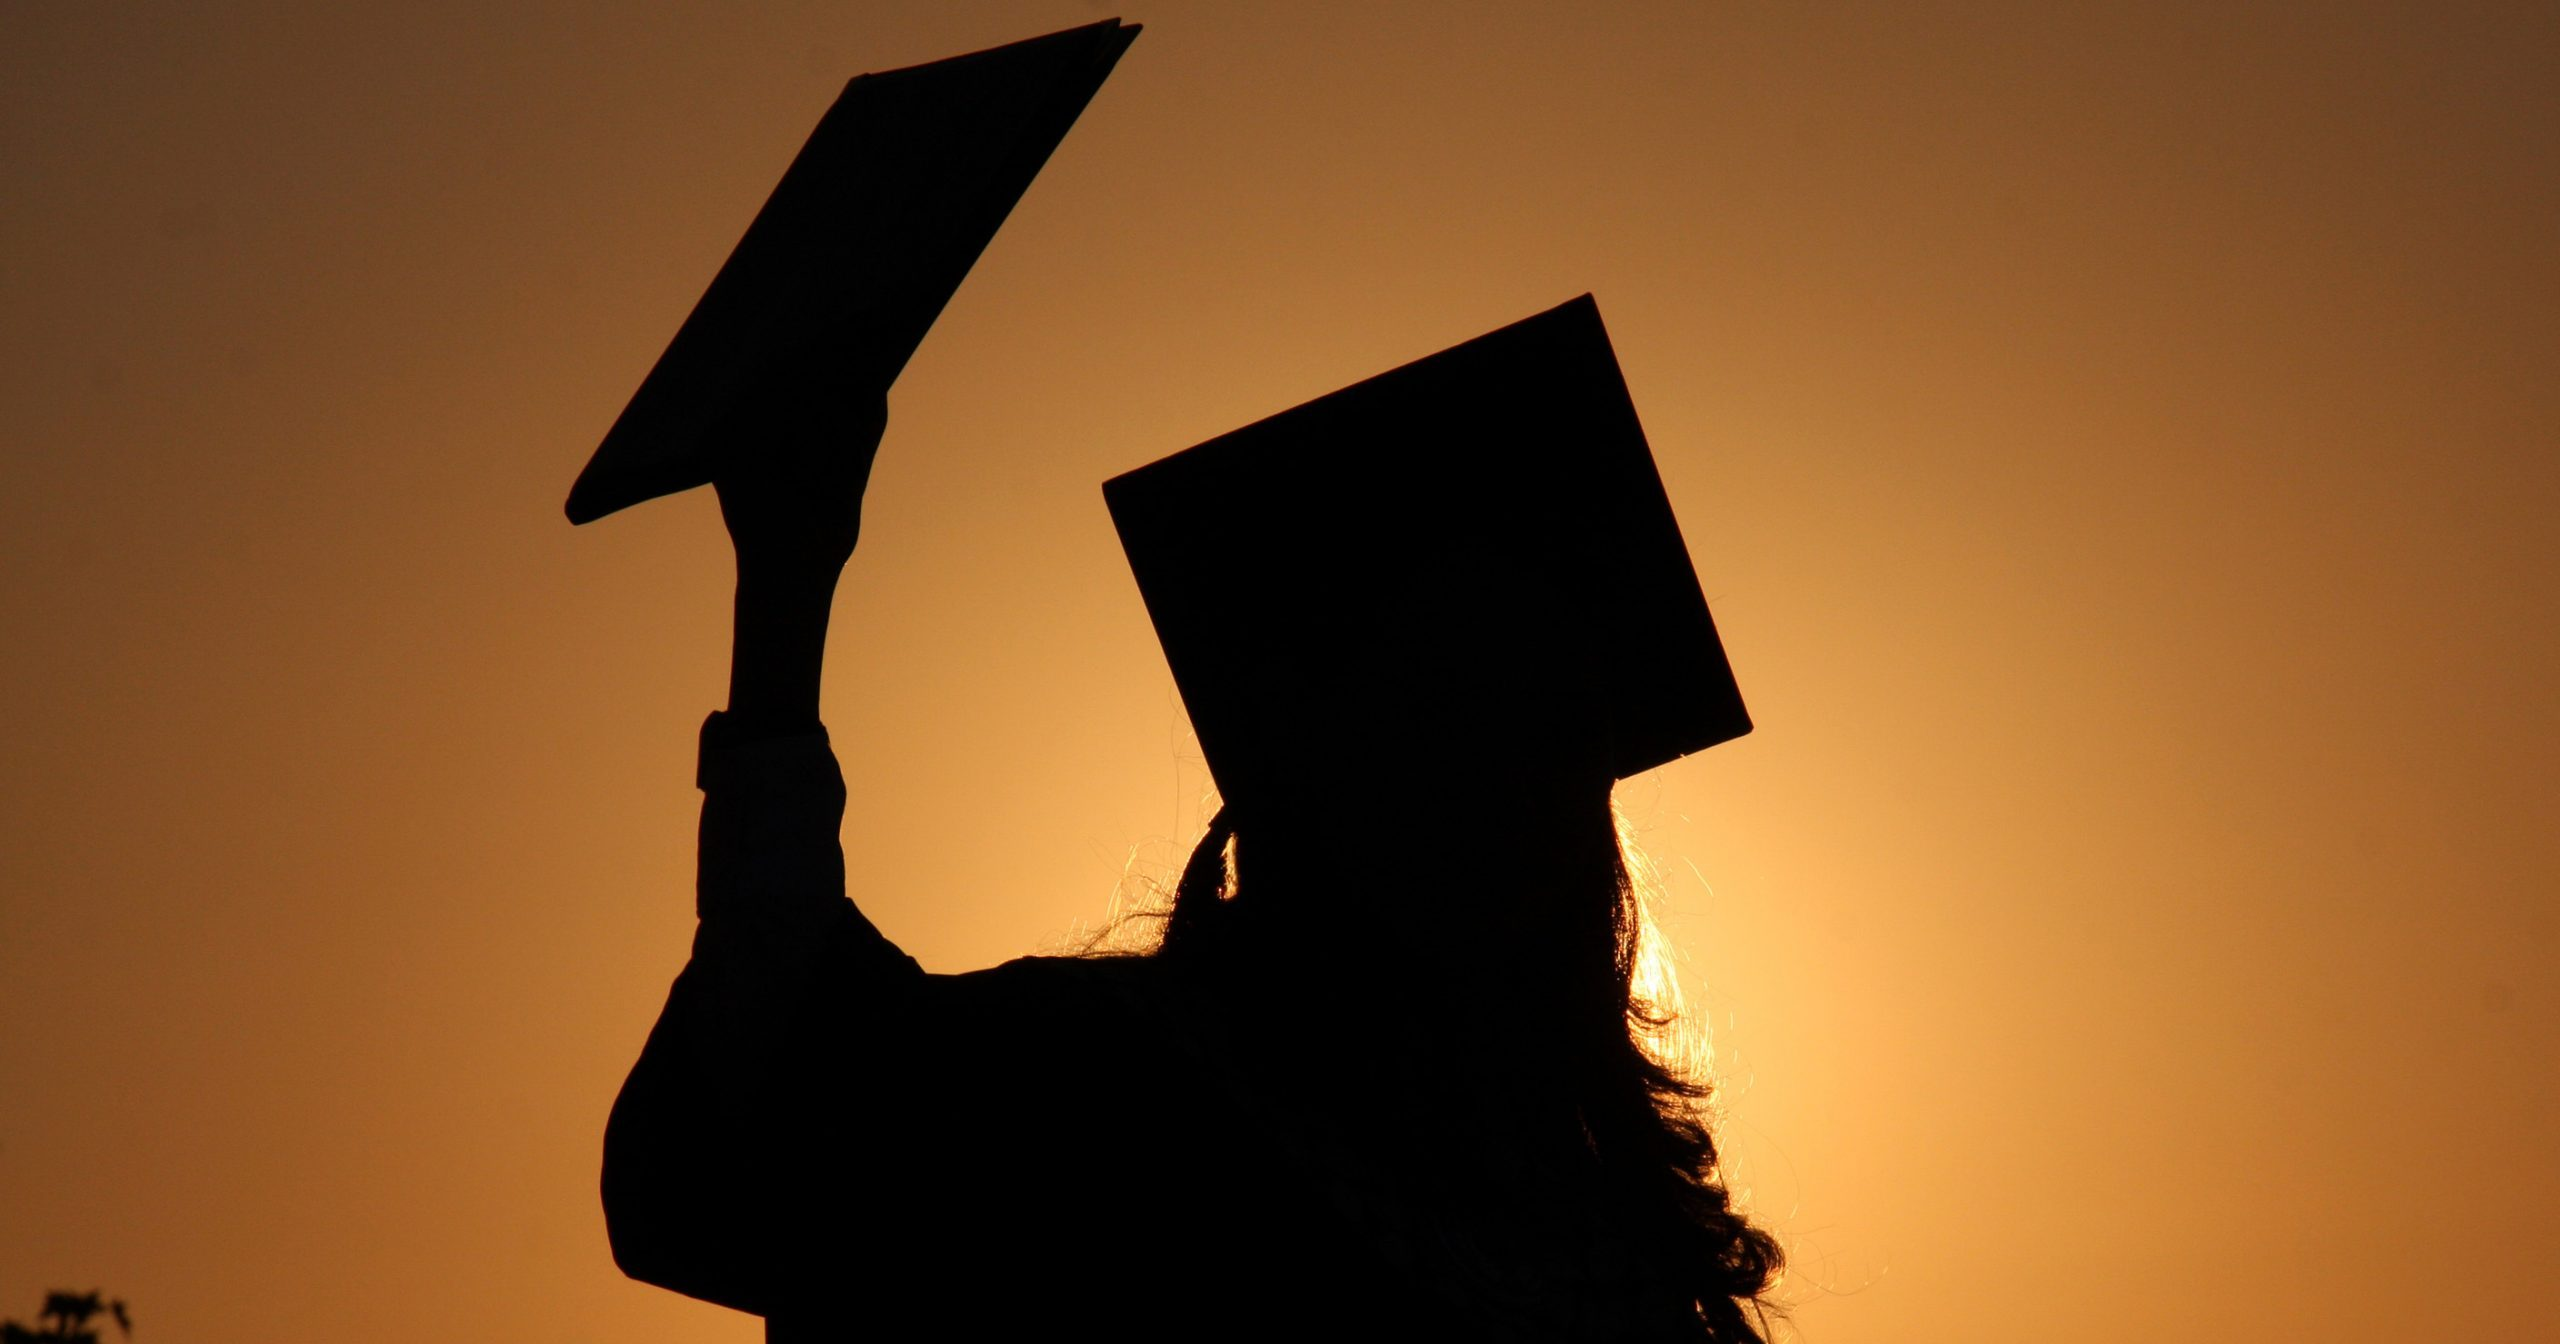 Silhouette of a university student graduating